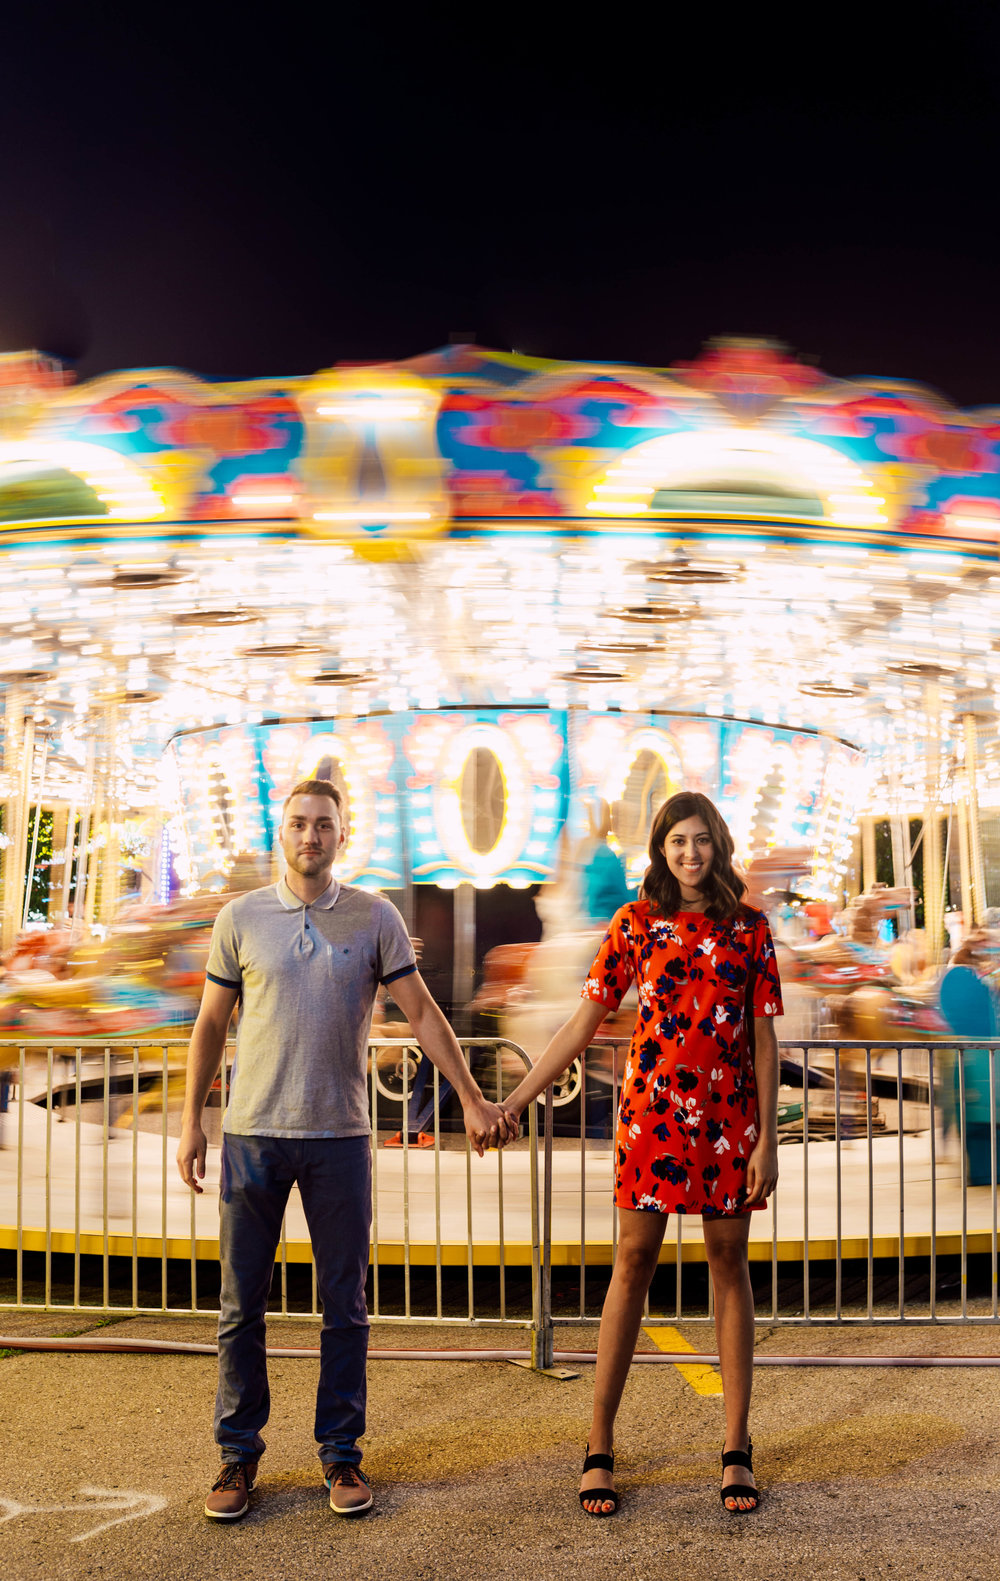 Engagement_Photography_Carnival_Fair-youthebestphotos-26.jpg